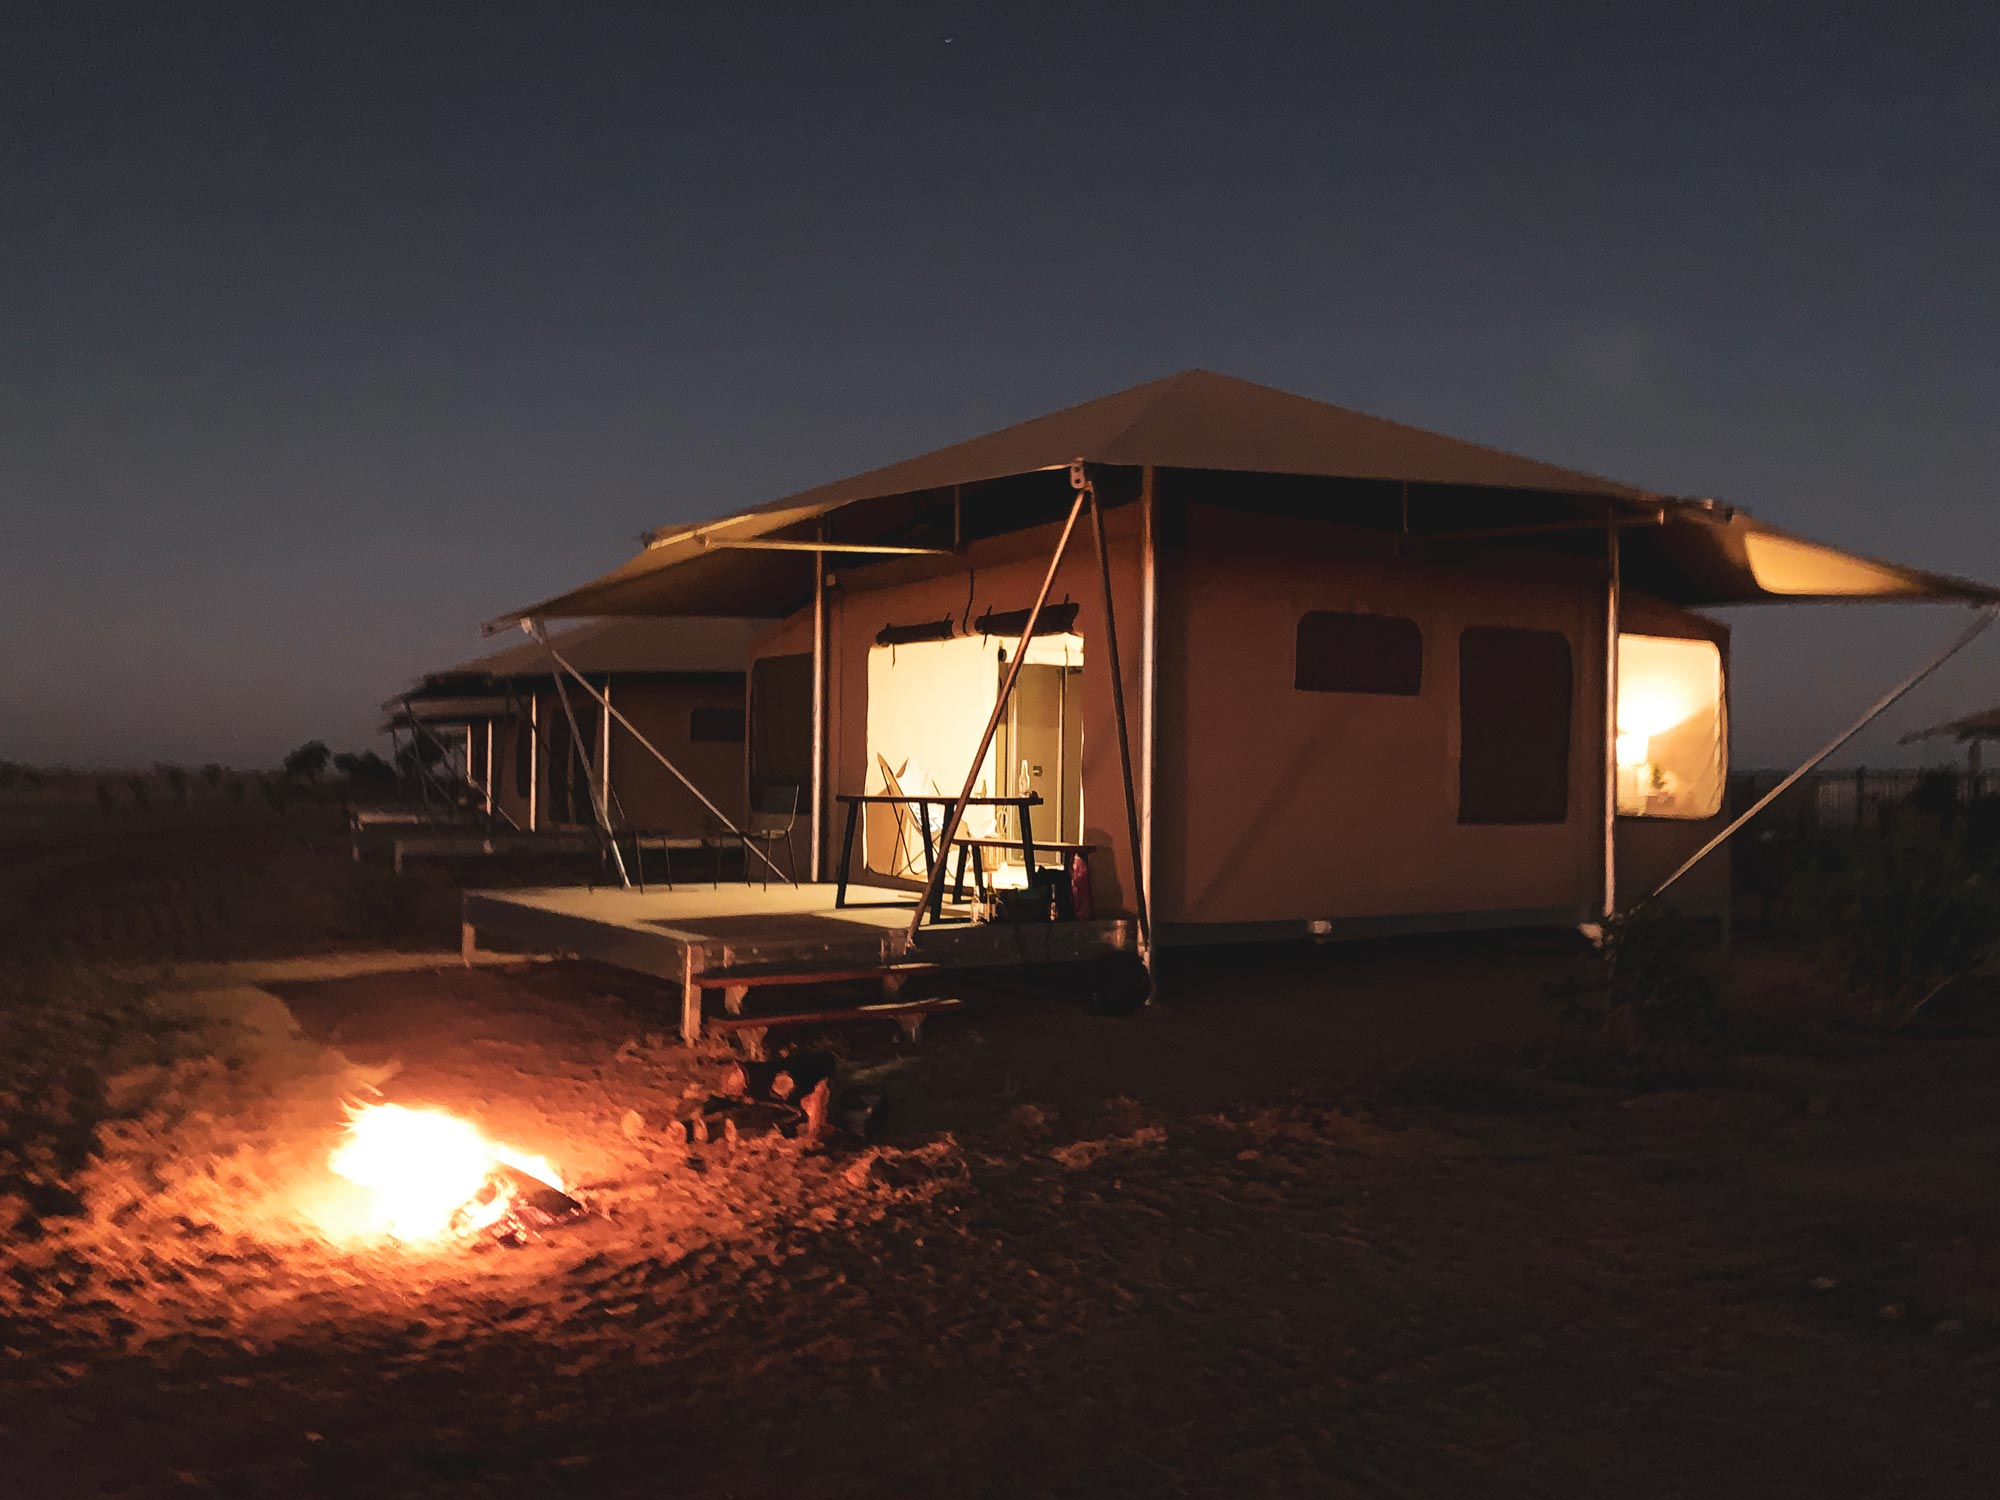 Glamping tent at night with fire pit